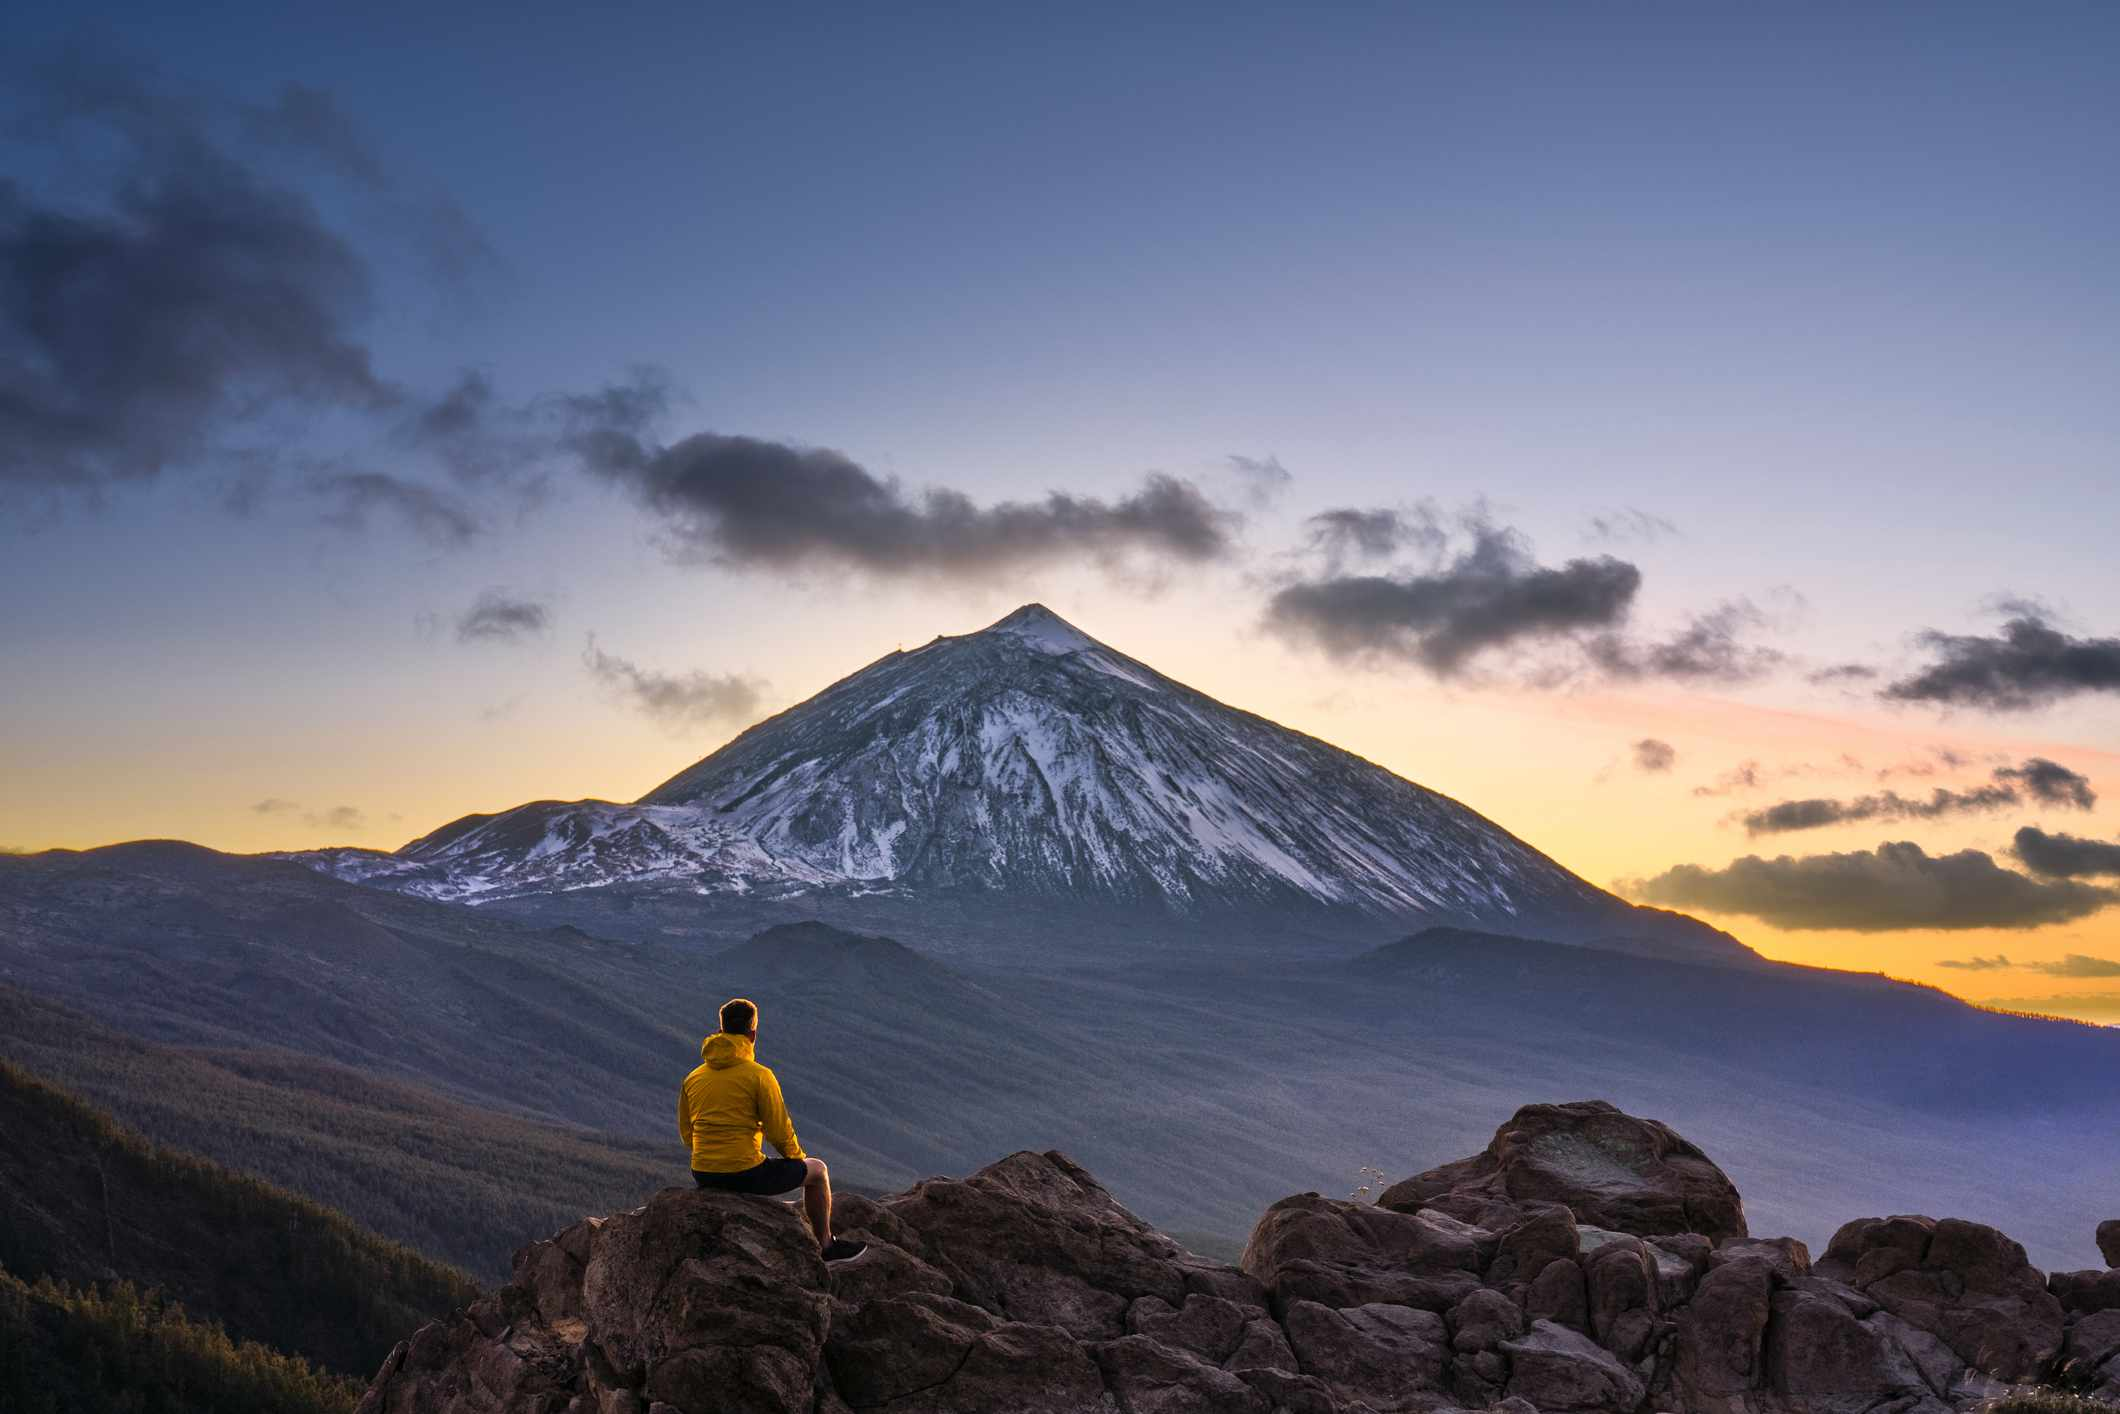 Man admiring the view of volcano Teide at dusk. Tenerife, Canary Islands, Spain